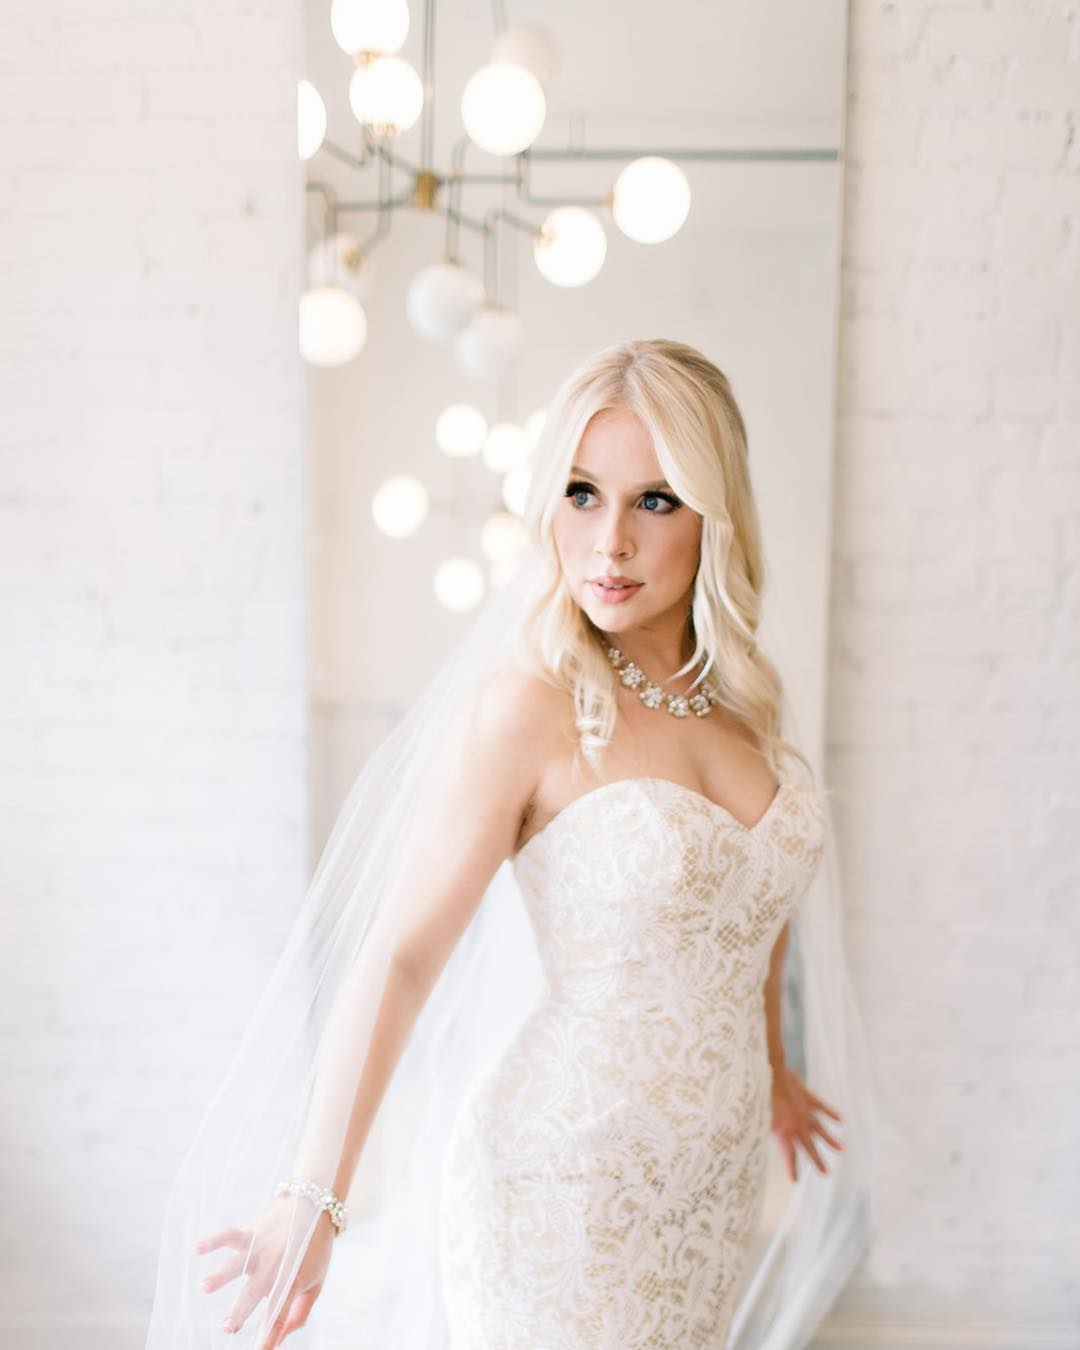 PRIVATE RENTAL - Rent Our salon for you and your bridal party. This private space offers a bright beautiful environment plus a glam team that can take care of all your hair/makeup needs!$100 per hour + services(3hrs minimum)*additional food/beverages available upon request